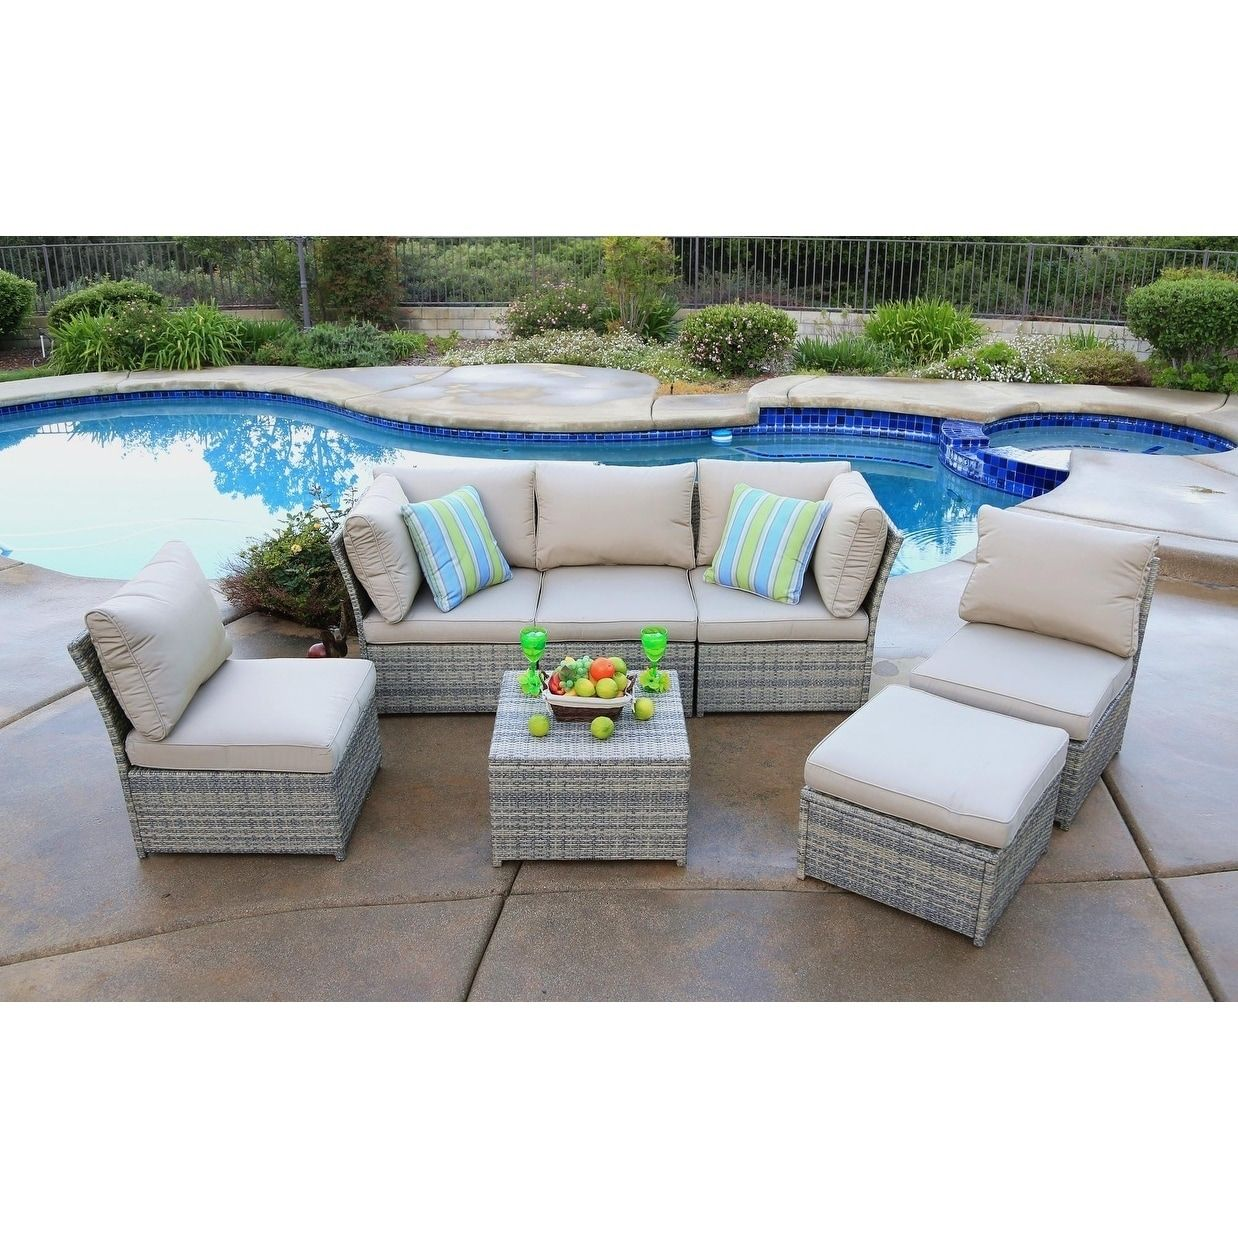 namco ikea your walmart shopko rattan sears decoration enjoy with furniture comfortable patio sofa overstock outdoor cushions